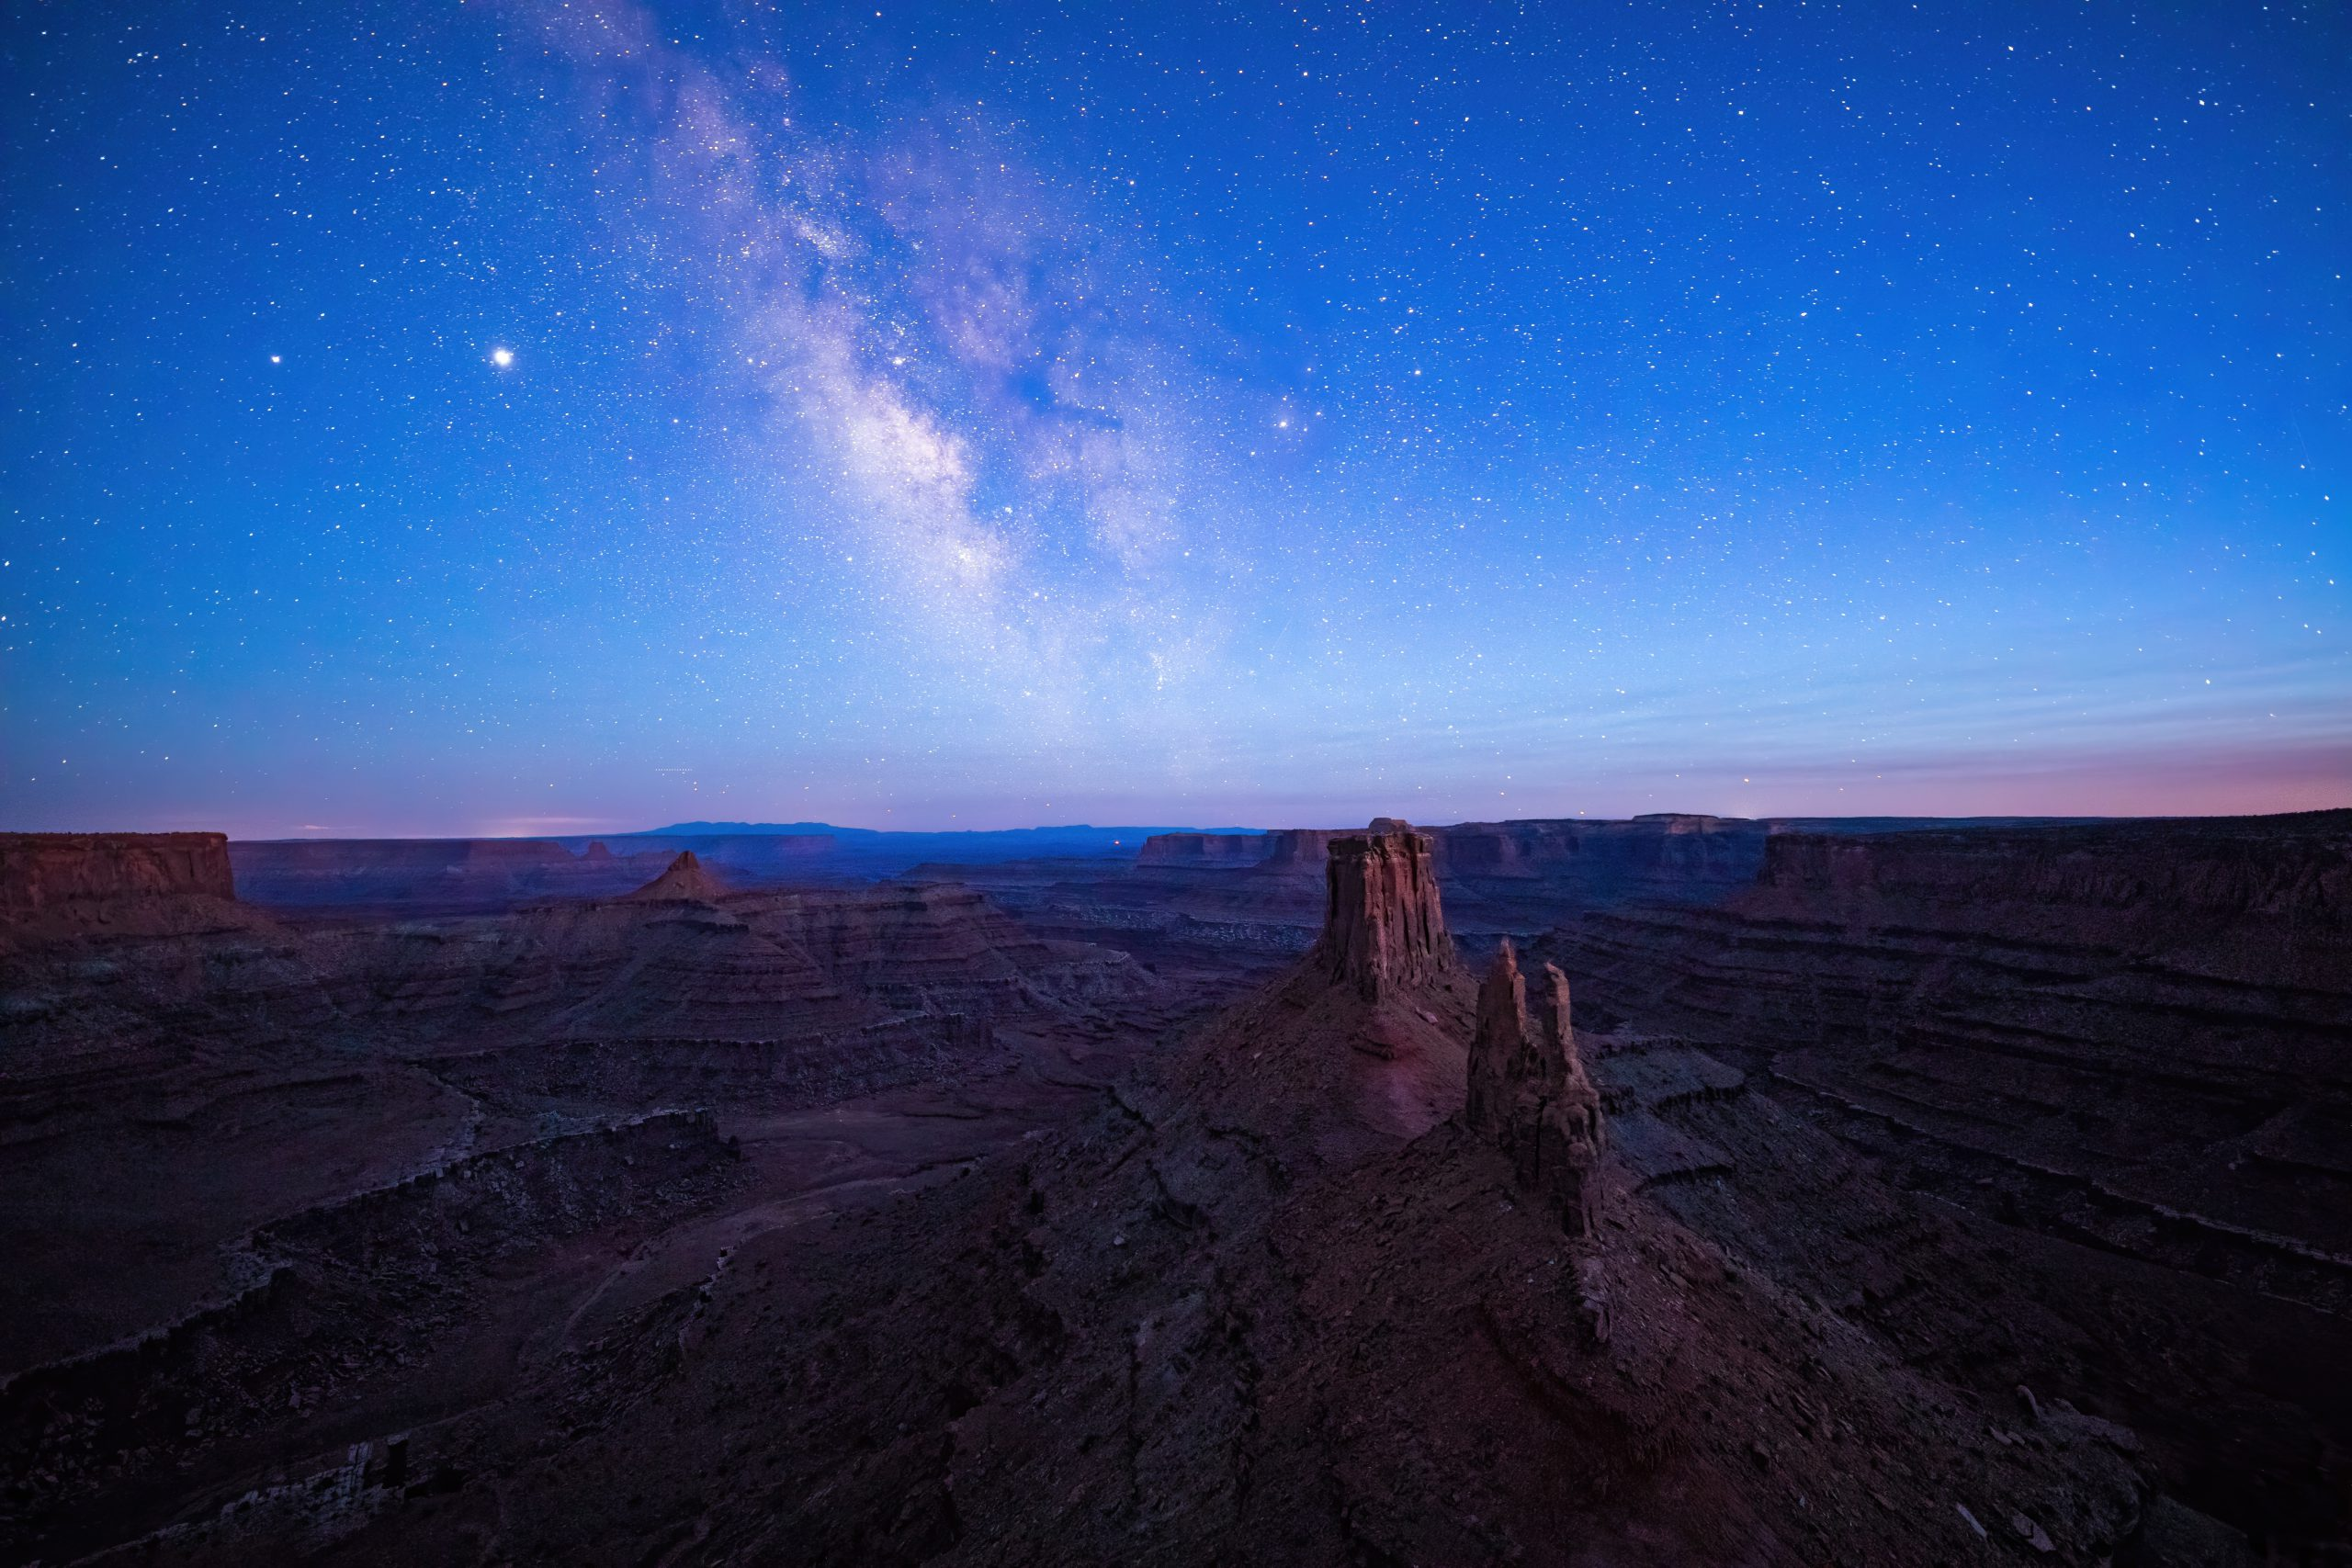 Astrophotography Tip: Use Blue Hour